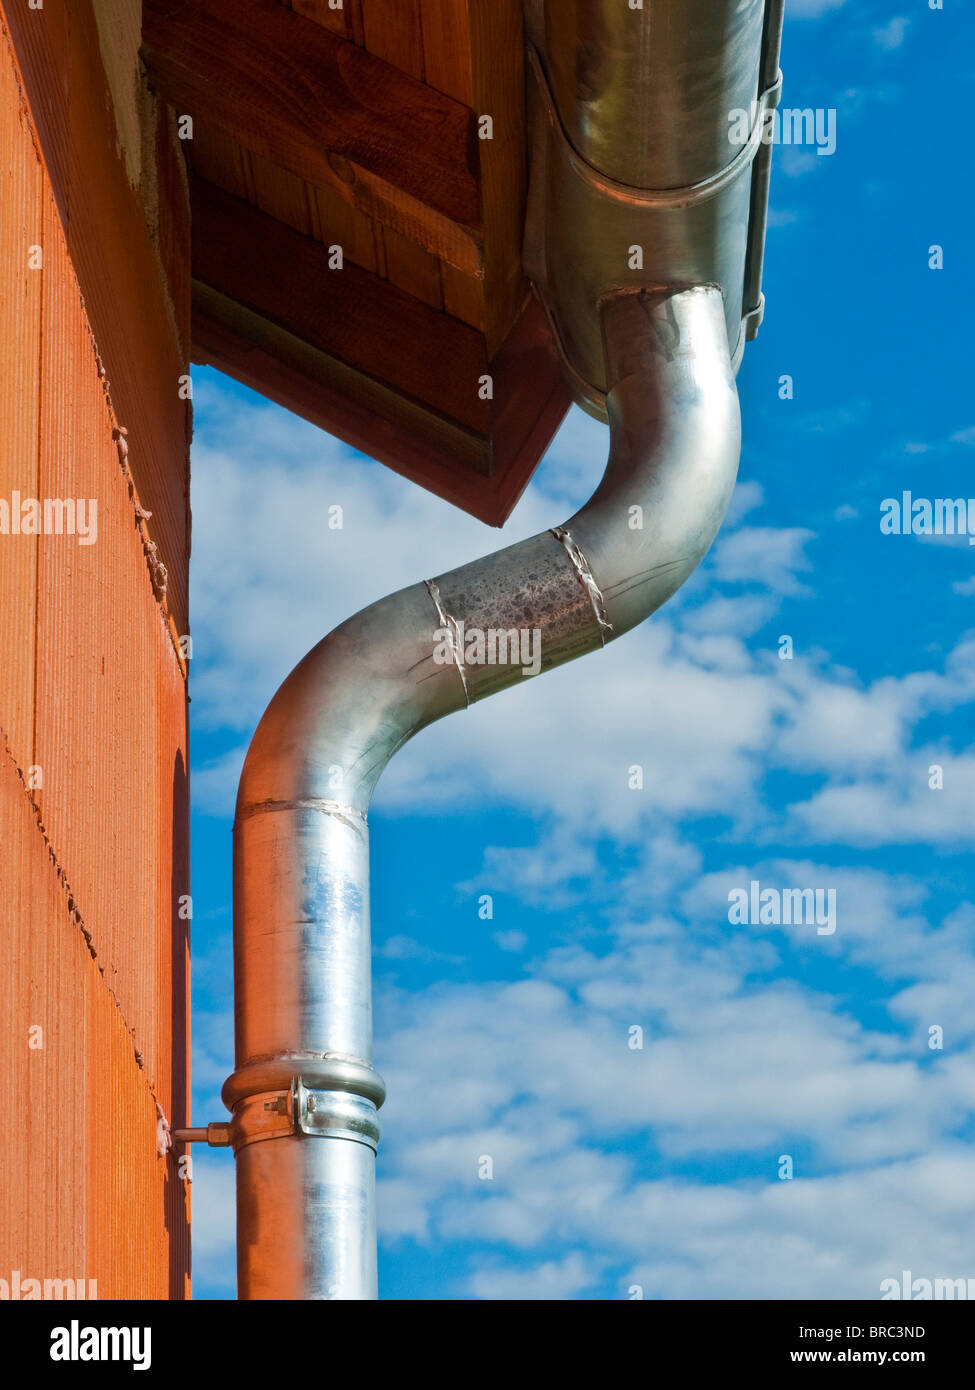 New bungalow construction showing galvanized rainwater gutter and drain-pipe- Indre-et-Loire, France. - Stock Image